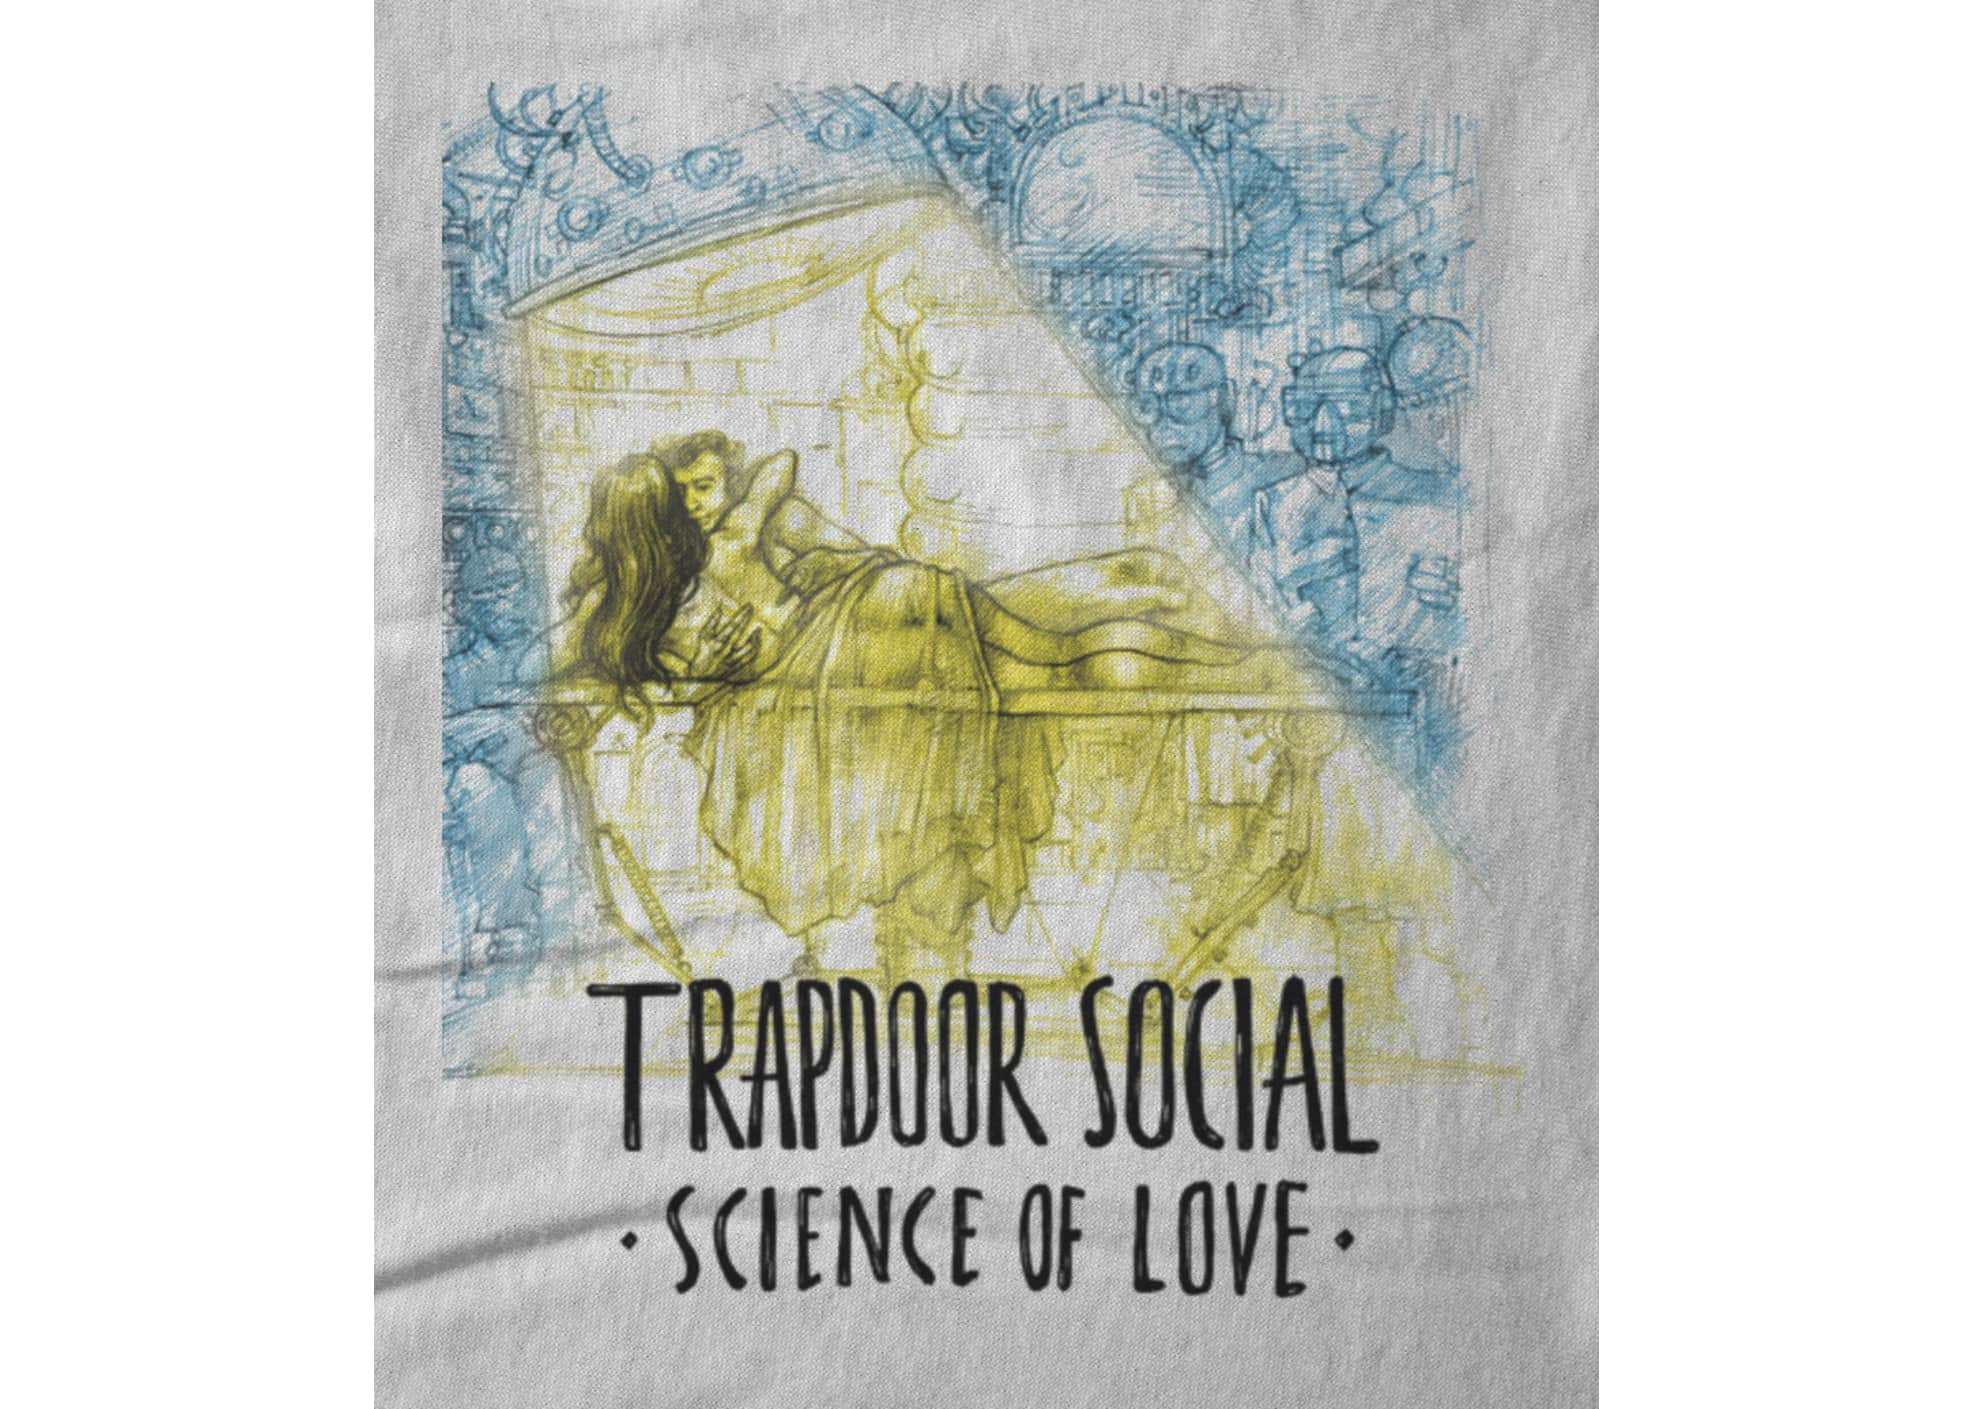 Trapdoor social science of love artwork 1481009854